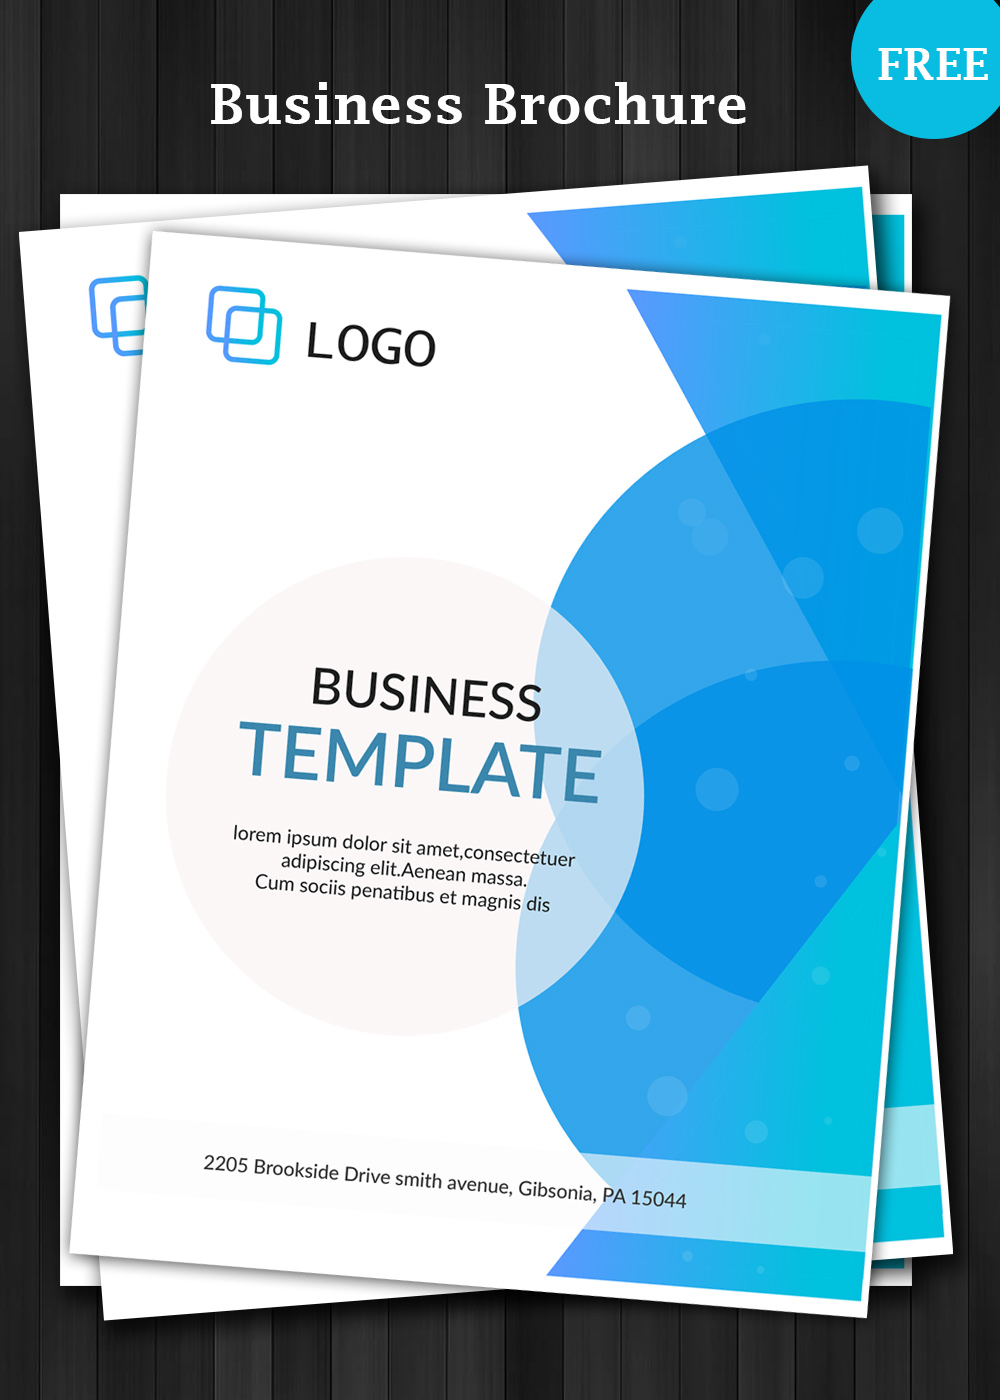 Business brochure template for Company brochure template free download